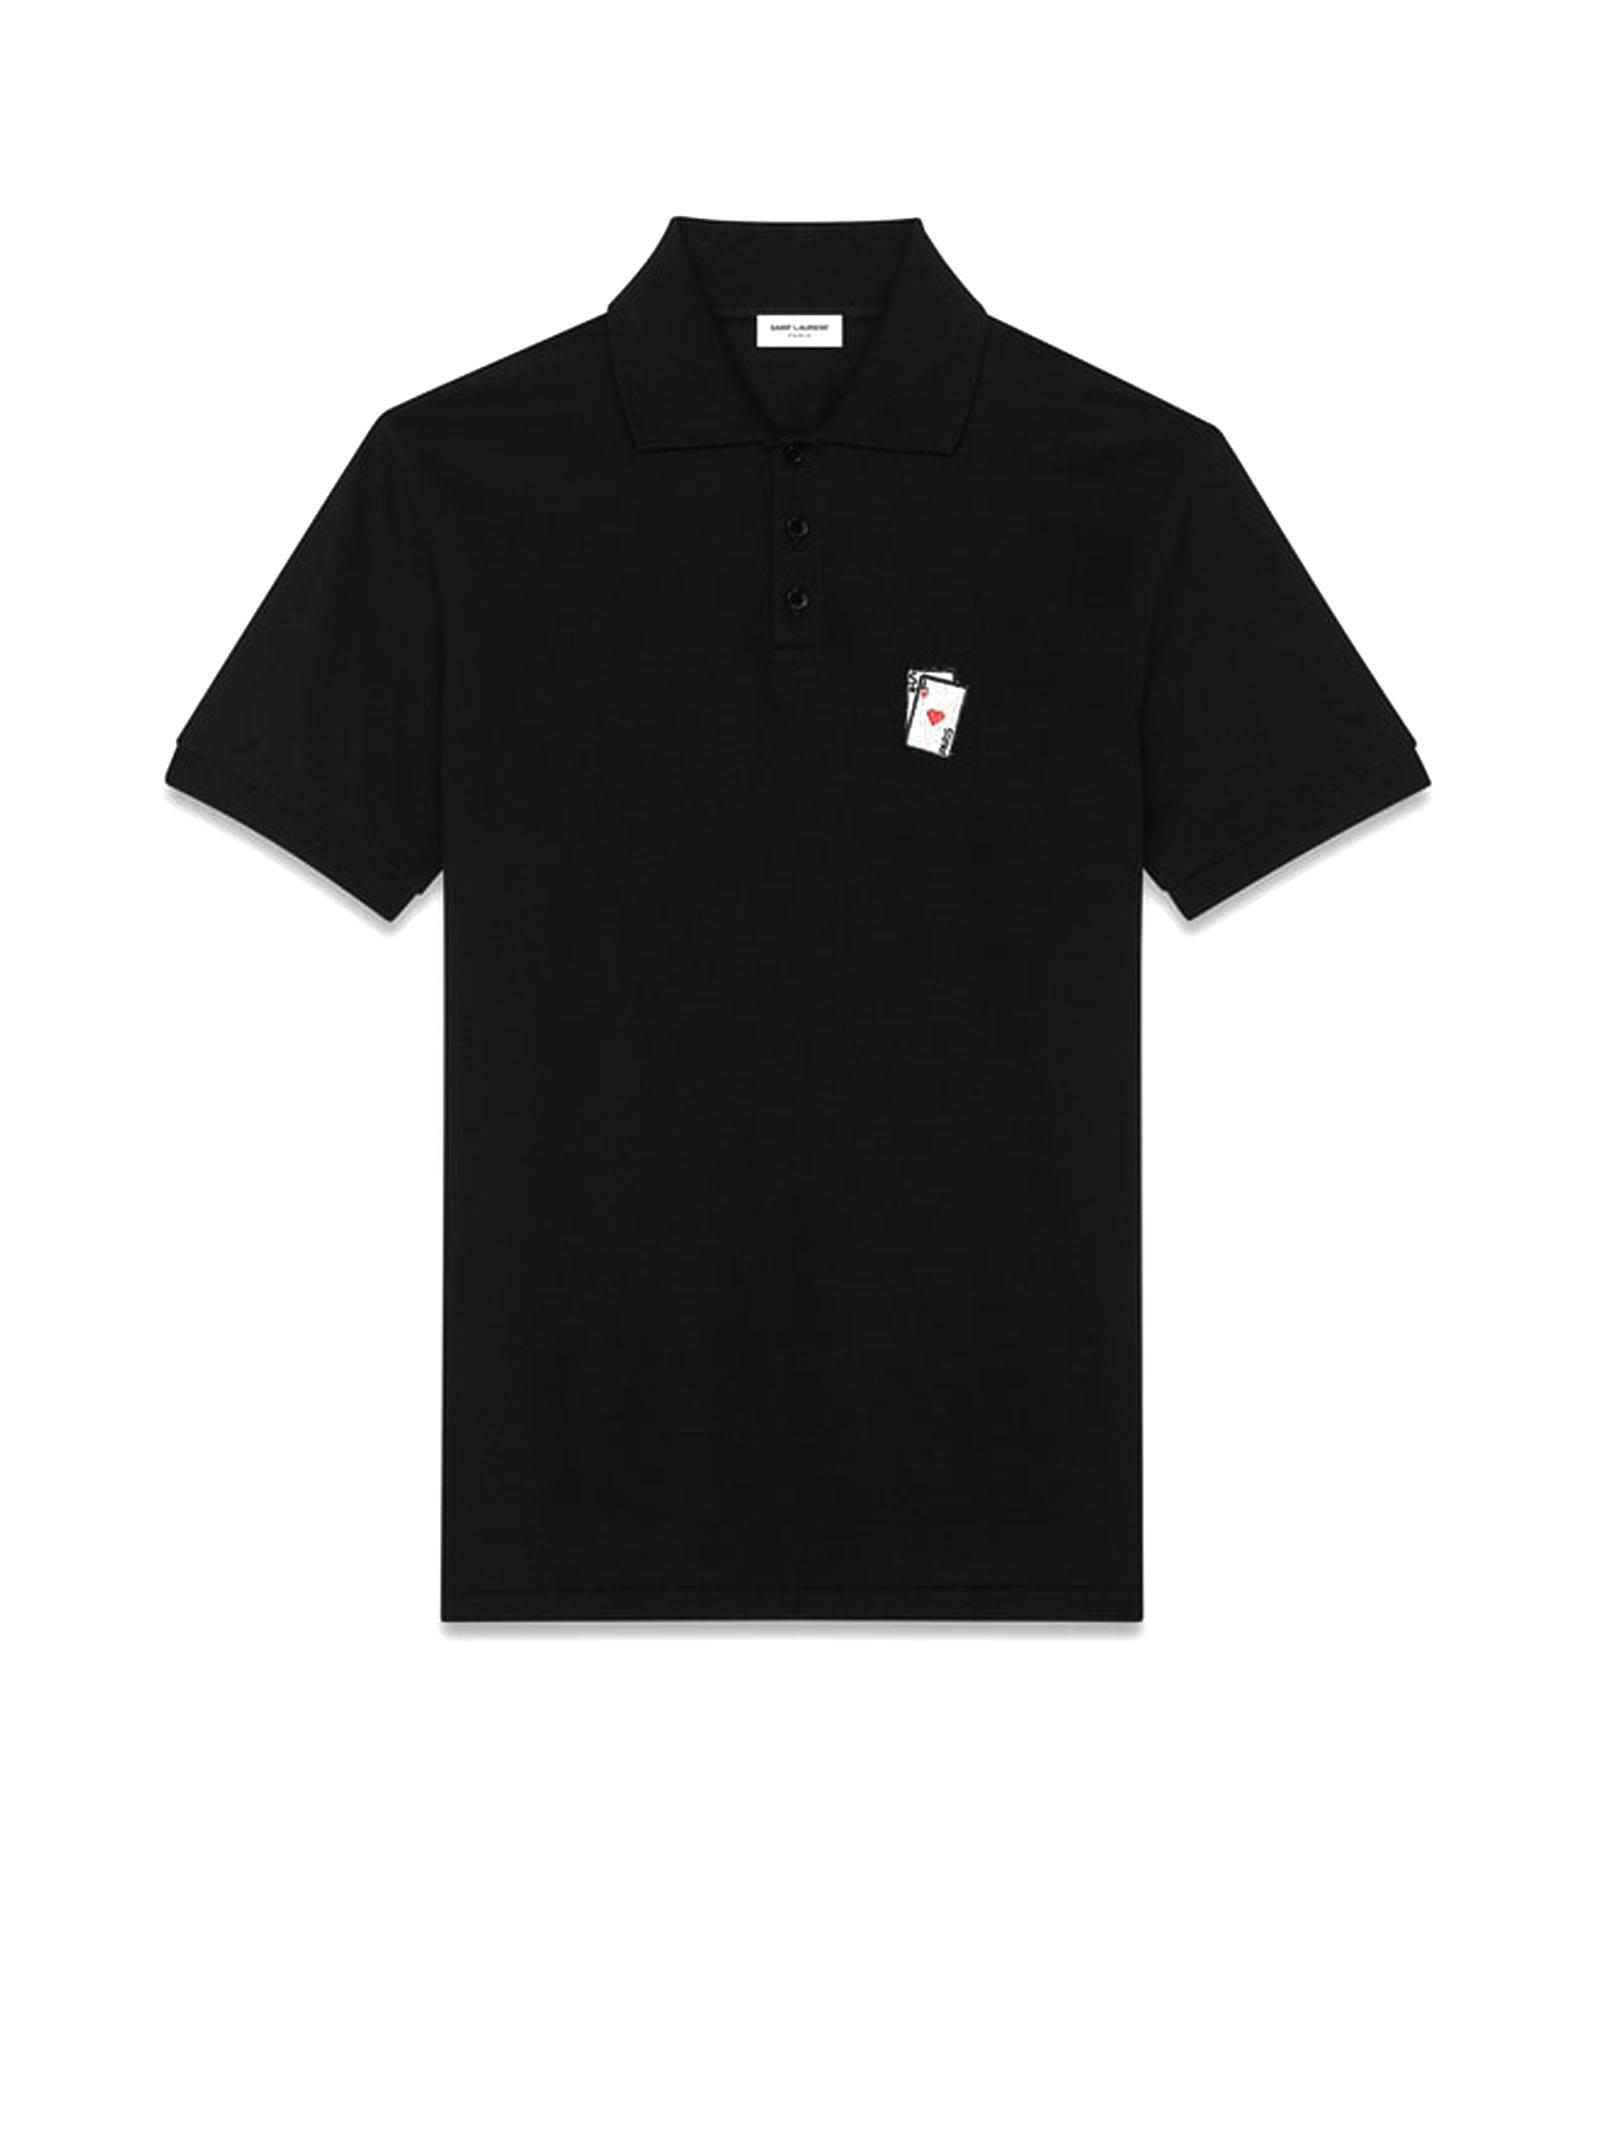 SAINT LAURENT PLAYING CARD POLO IN BLACK PIQUE COTTON